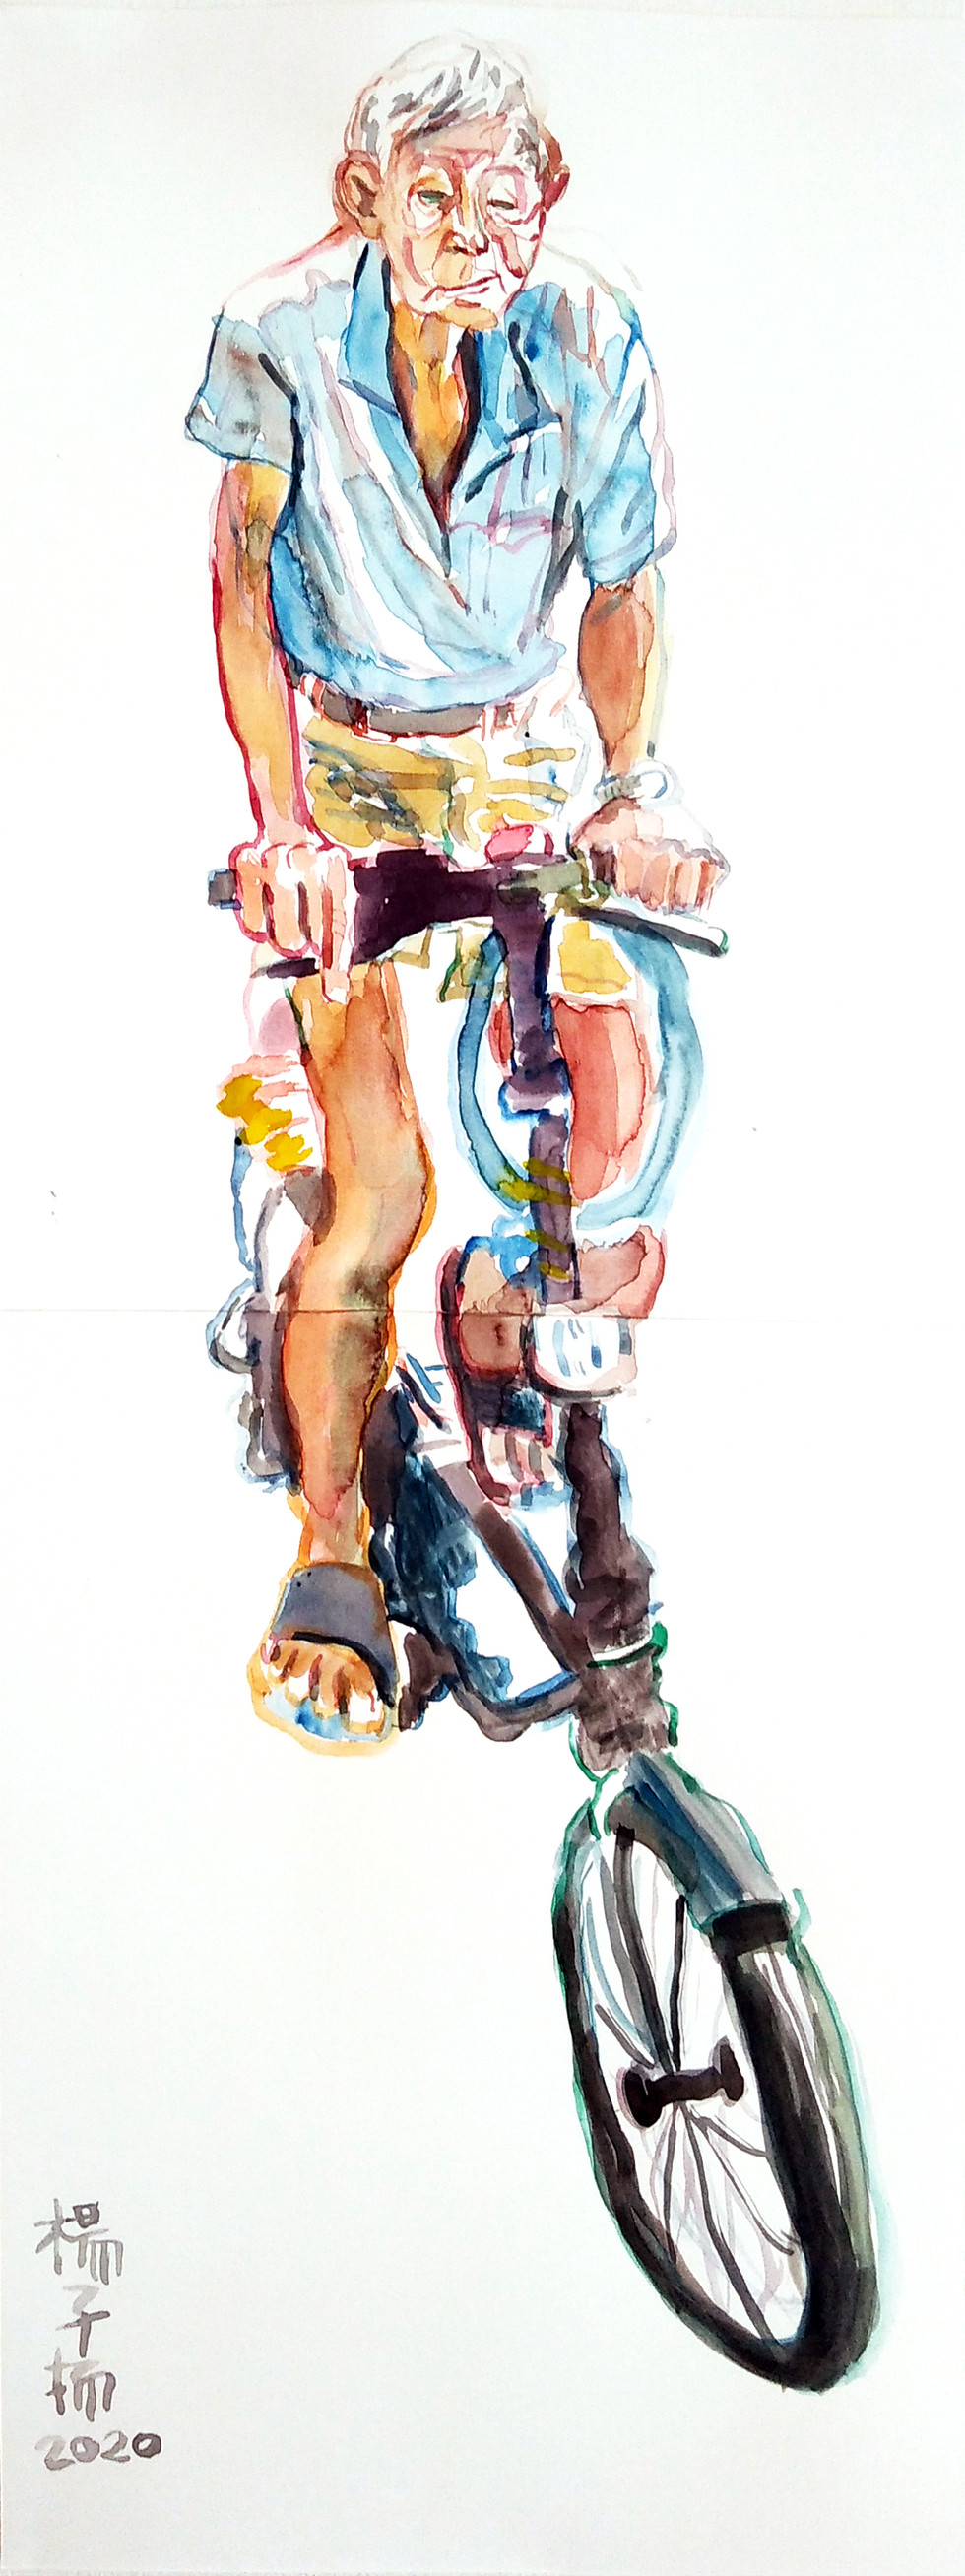 Man on a Bicycle, 2020, Watercolour on paper, 59.4 x 21cm  Private Collection, Malaysia/The Philippines